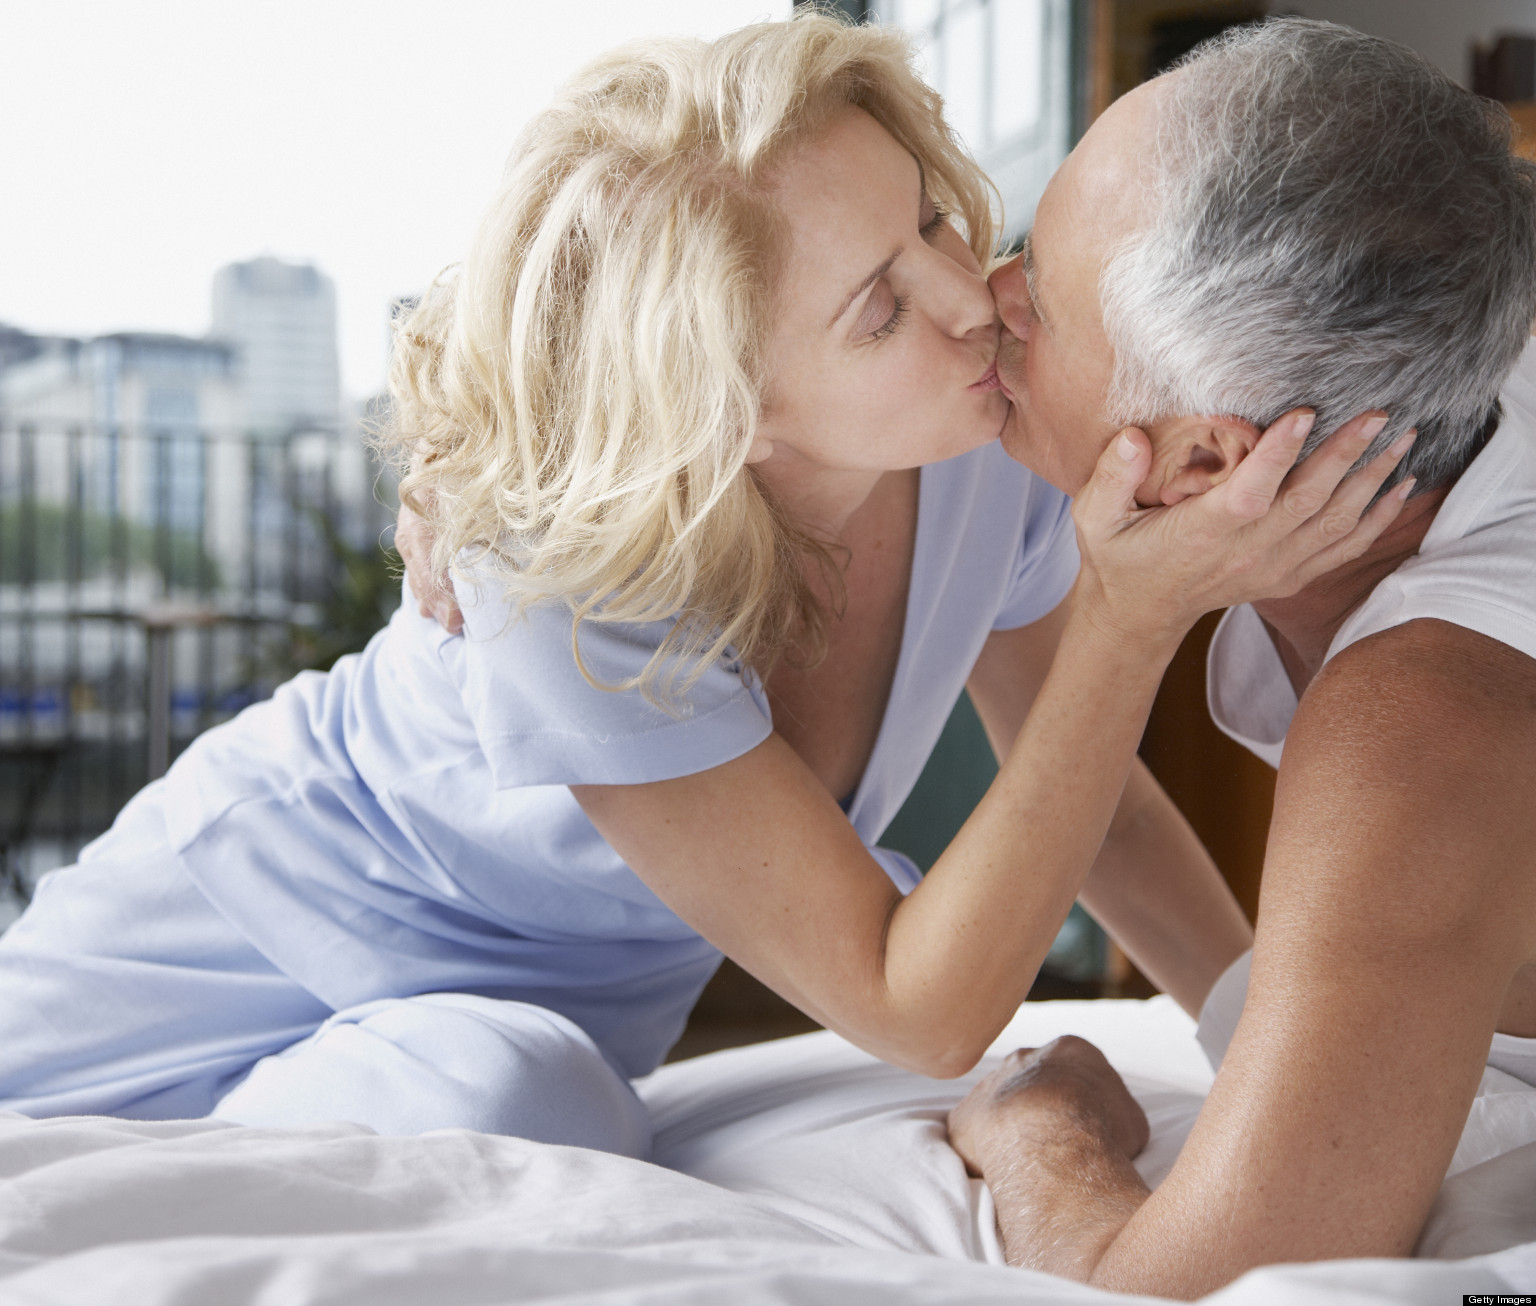 Promiscuity Dating Atheist One-night Stand